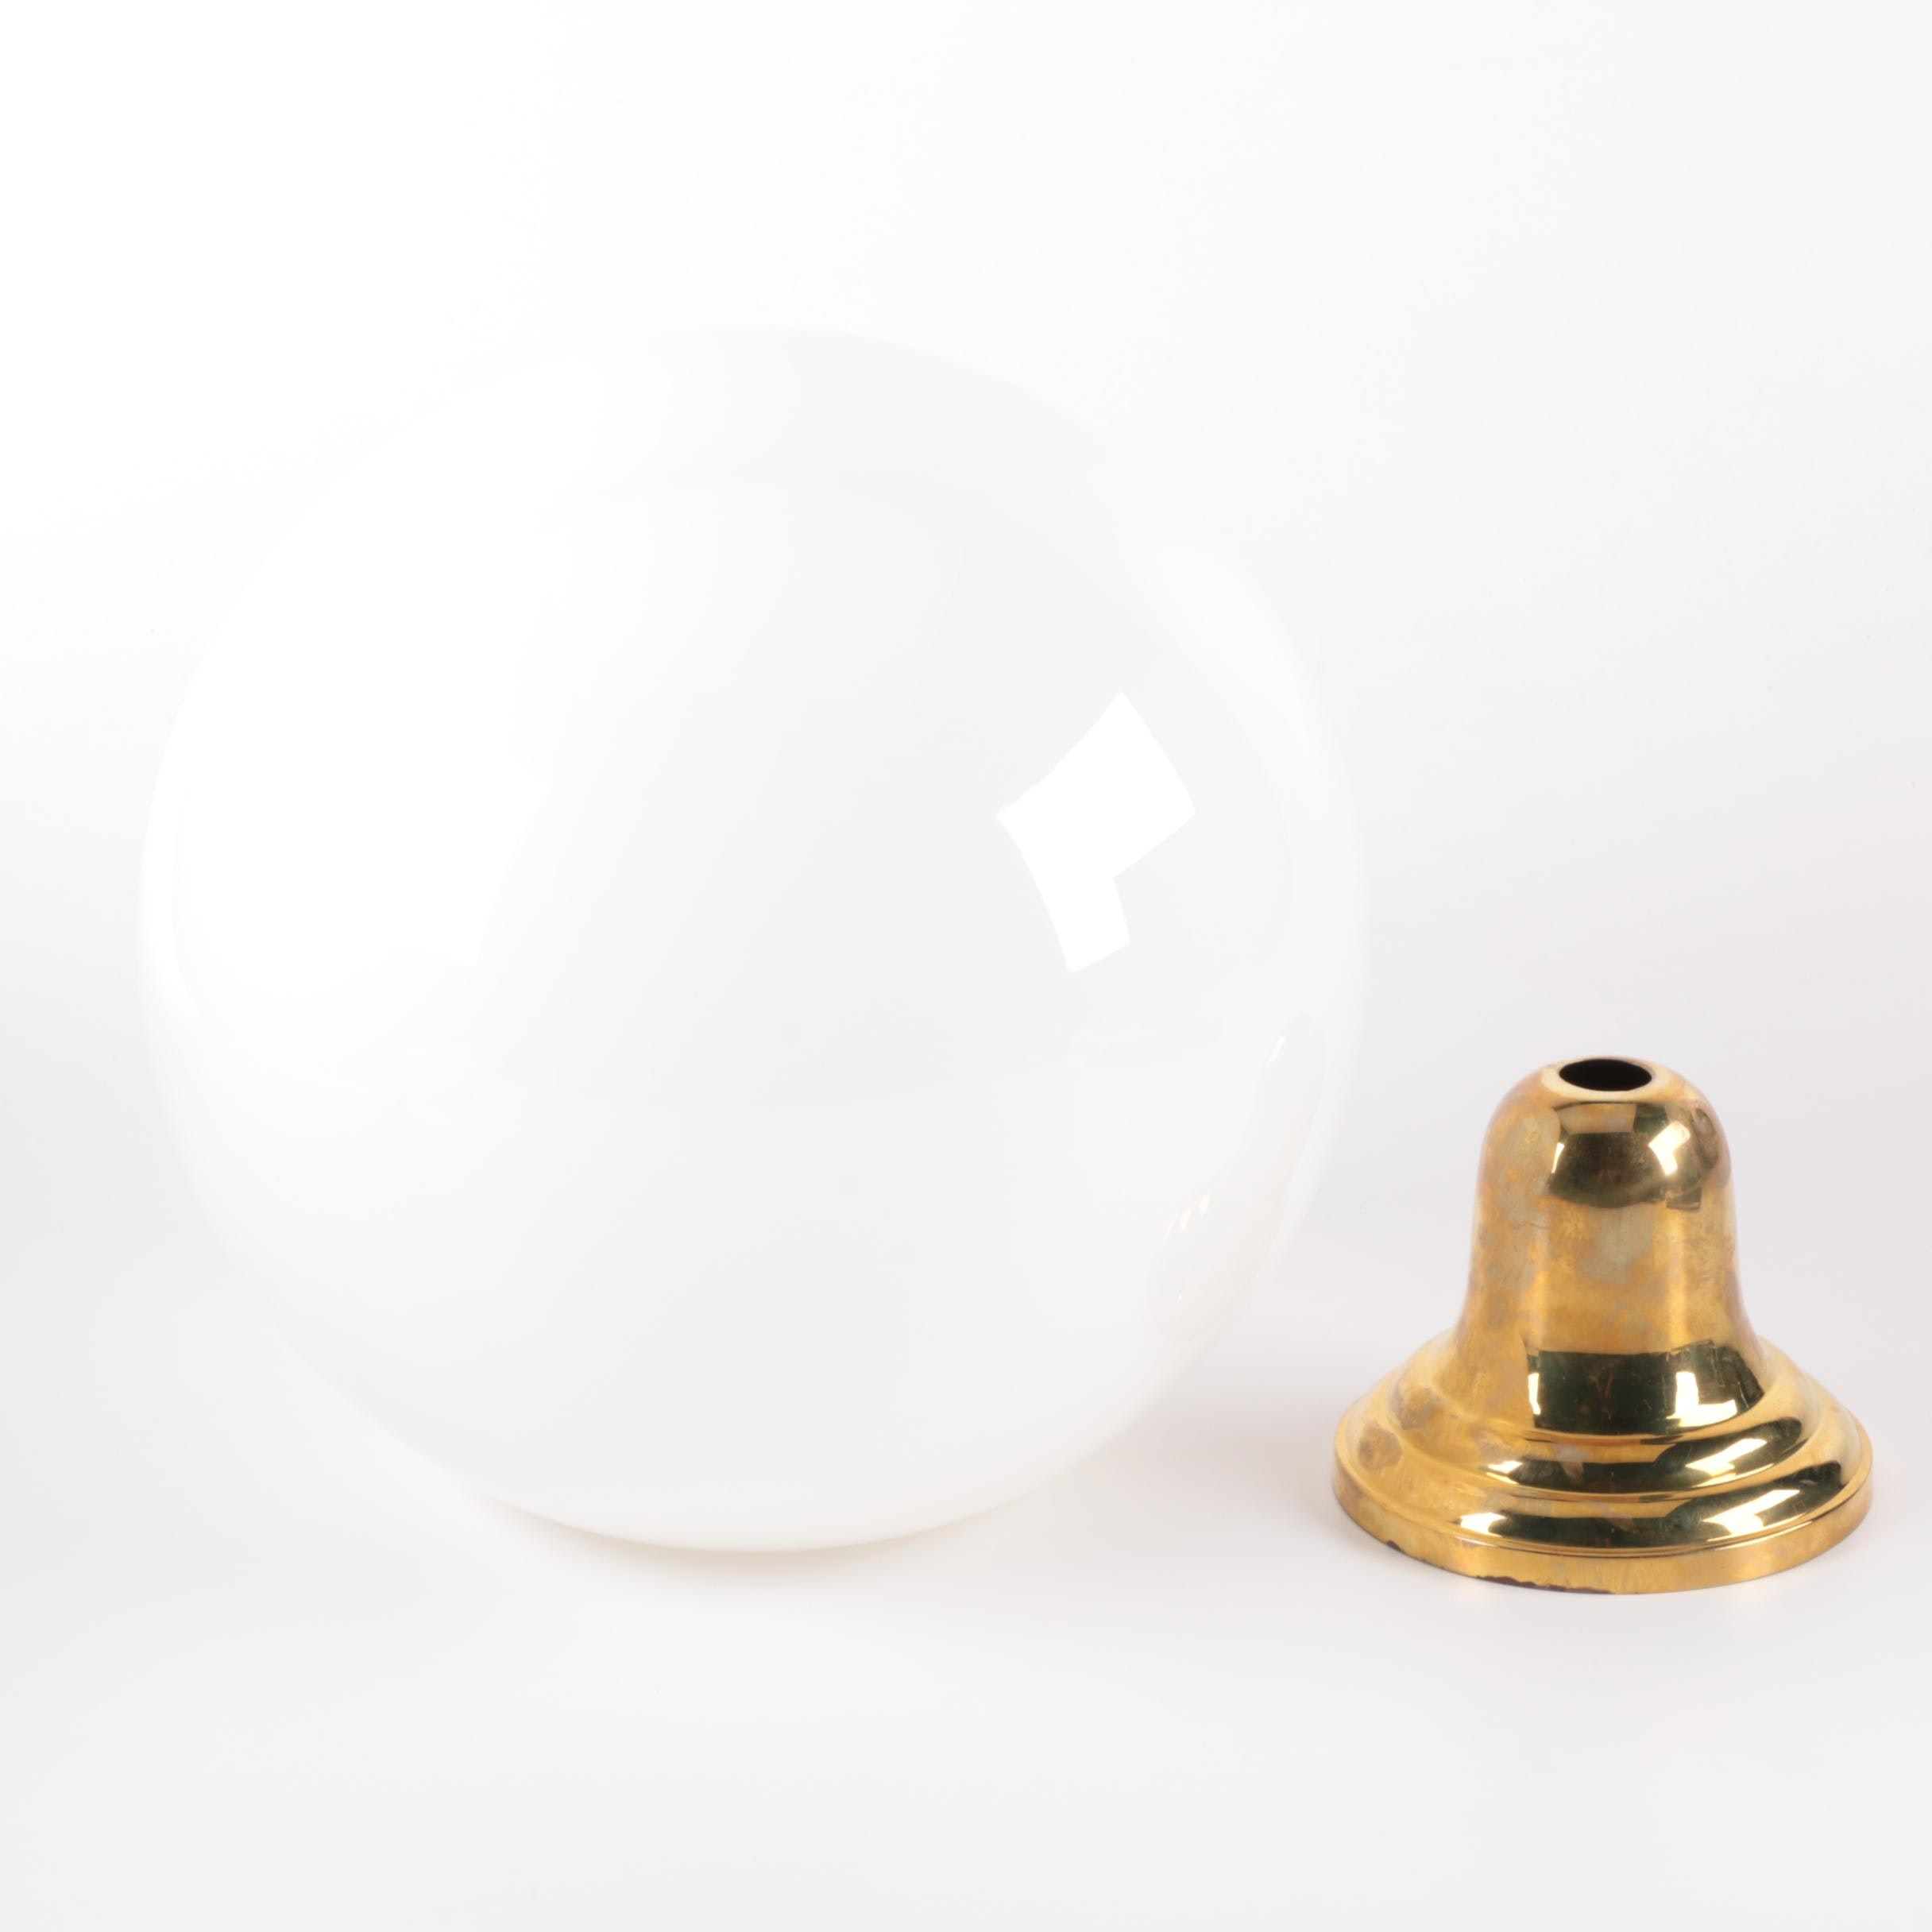 Glass Dome Light Fixture Shade and Mount